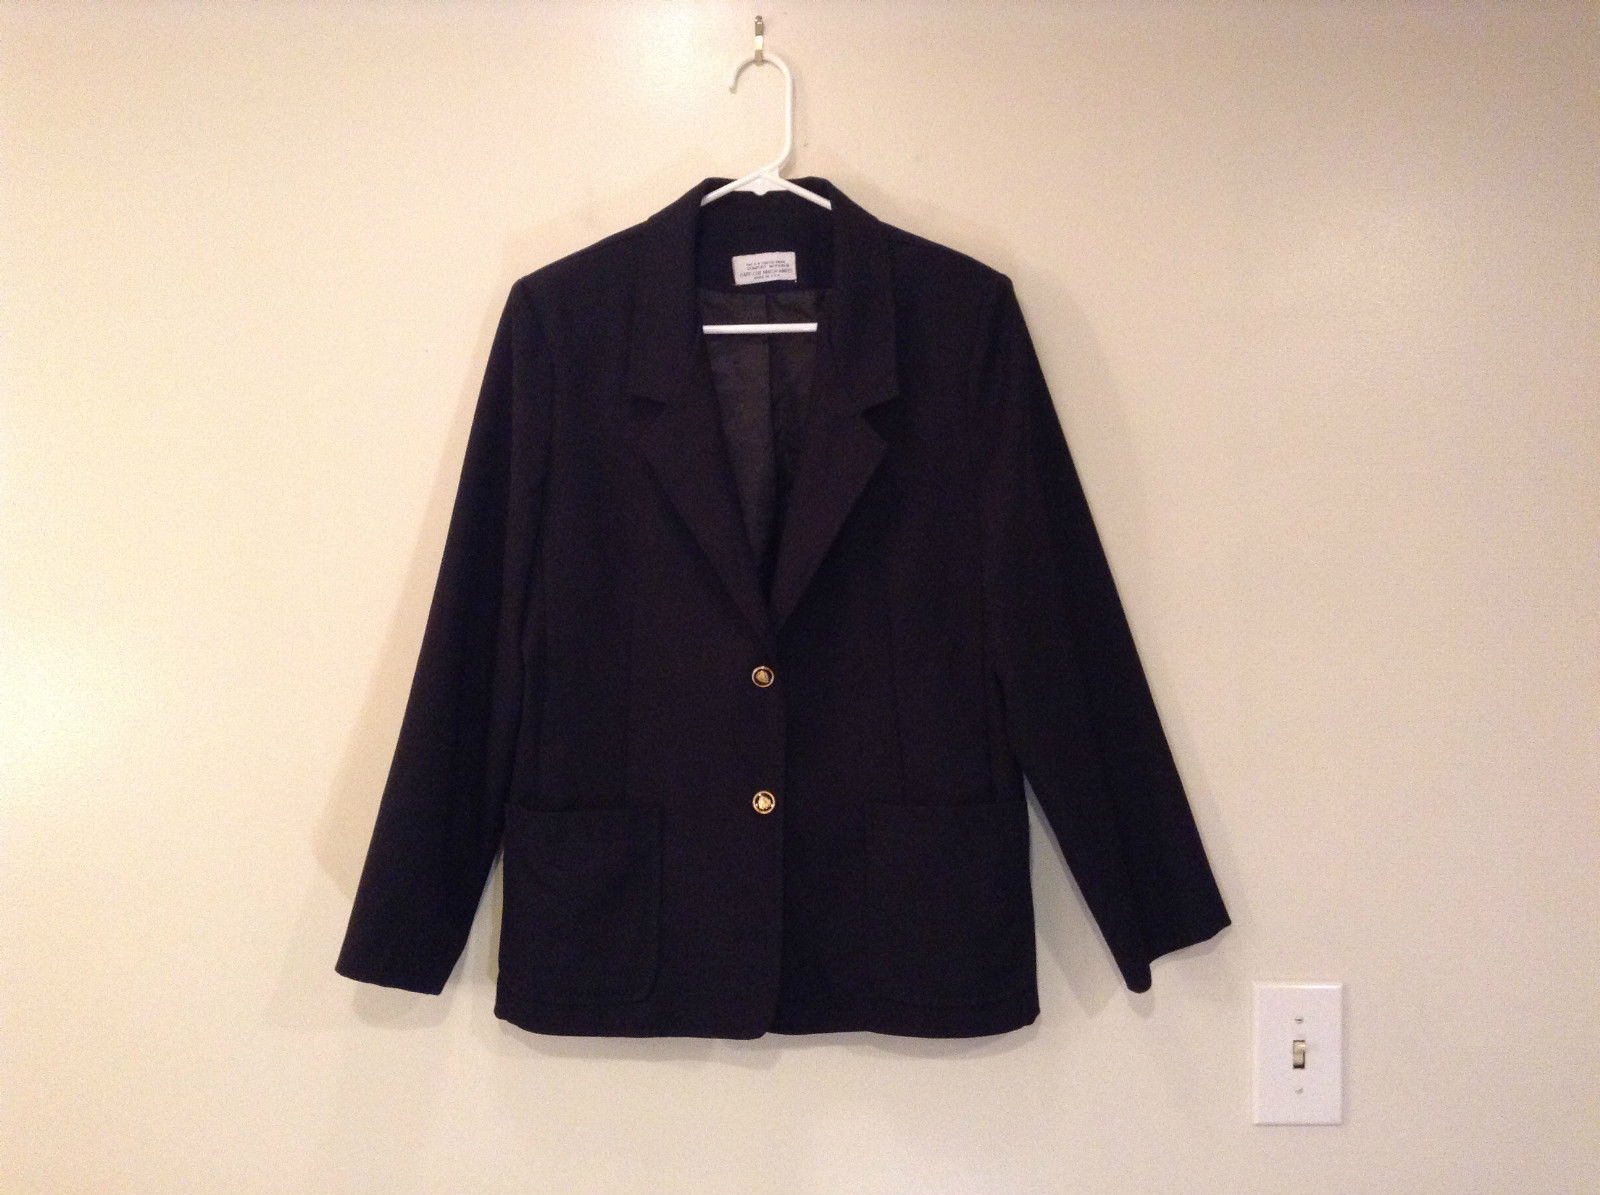 Size 12 Black Cape Code Jacket Match Mates Stretch Fabric Unlined